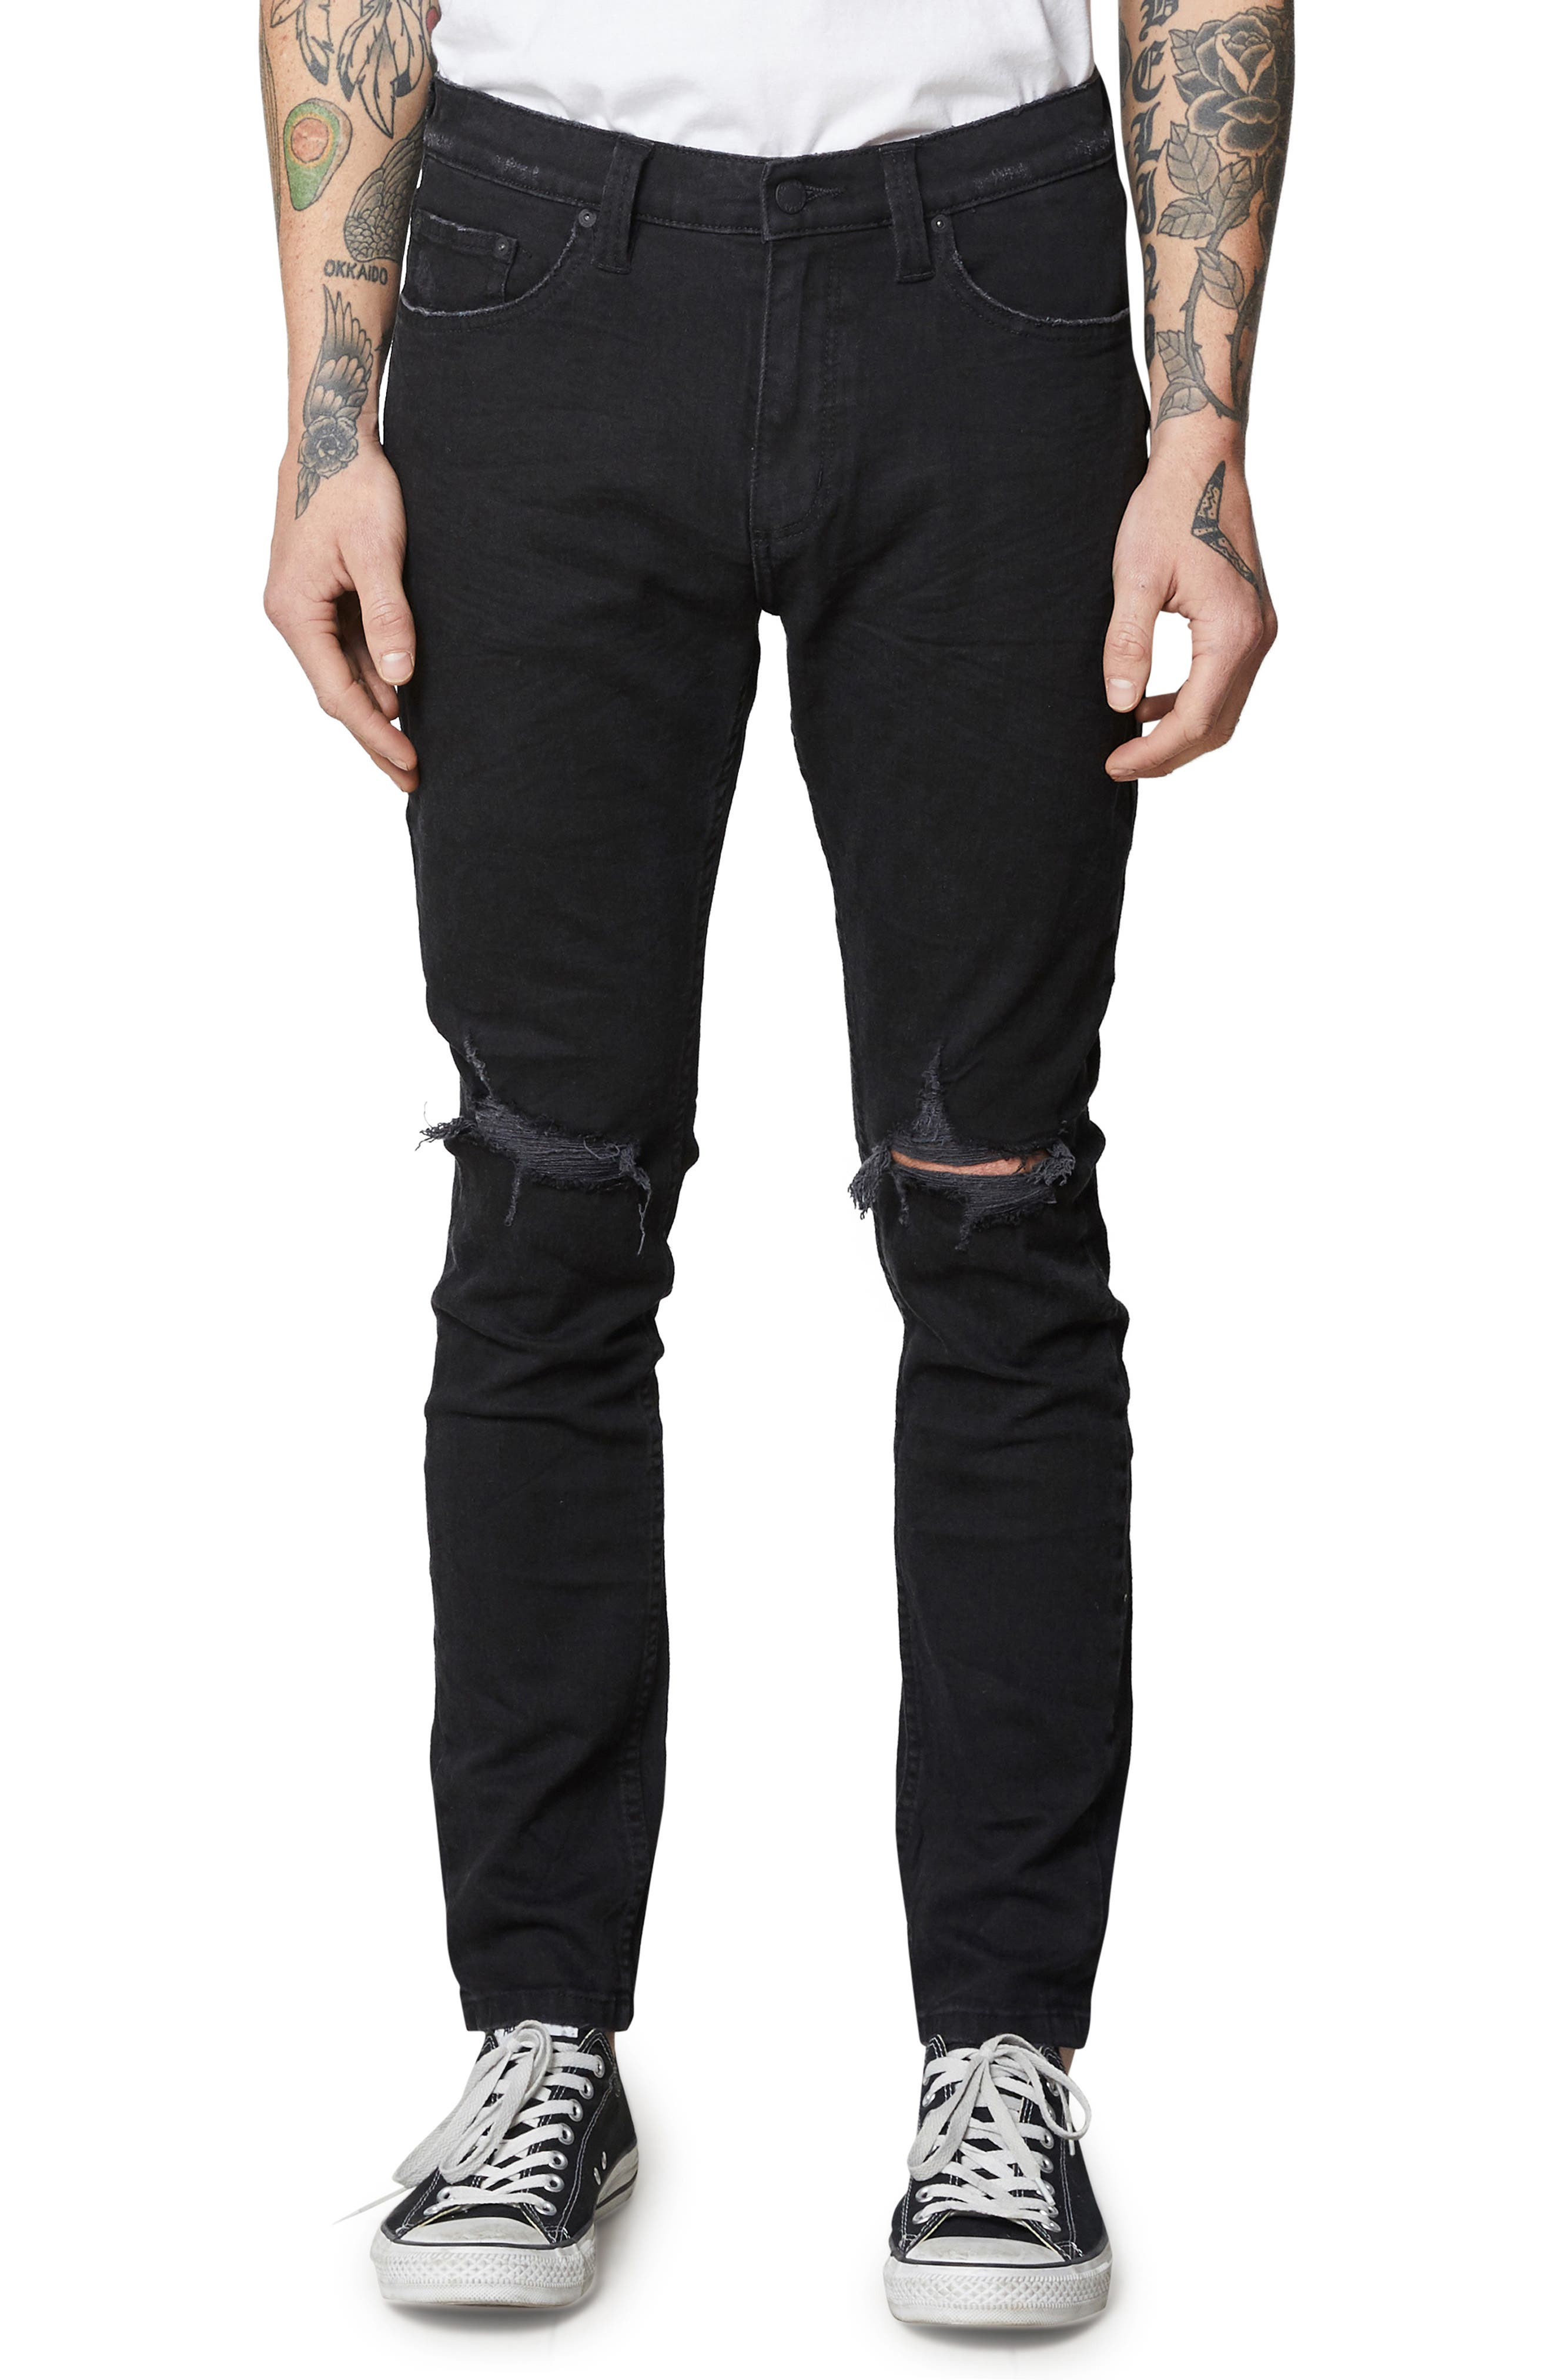 Stinger Skinny Fit Jeans,                             Main thumbnail 1, color,                             BLACK RIP